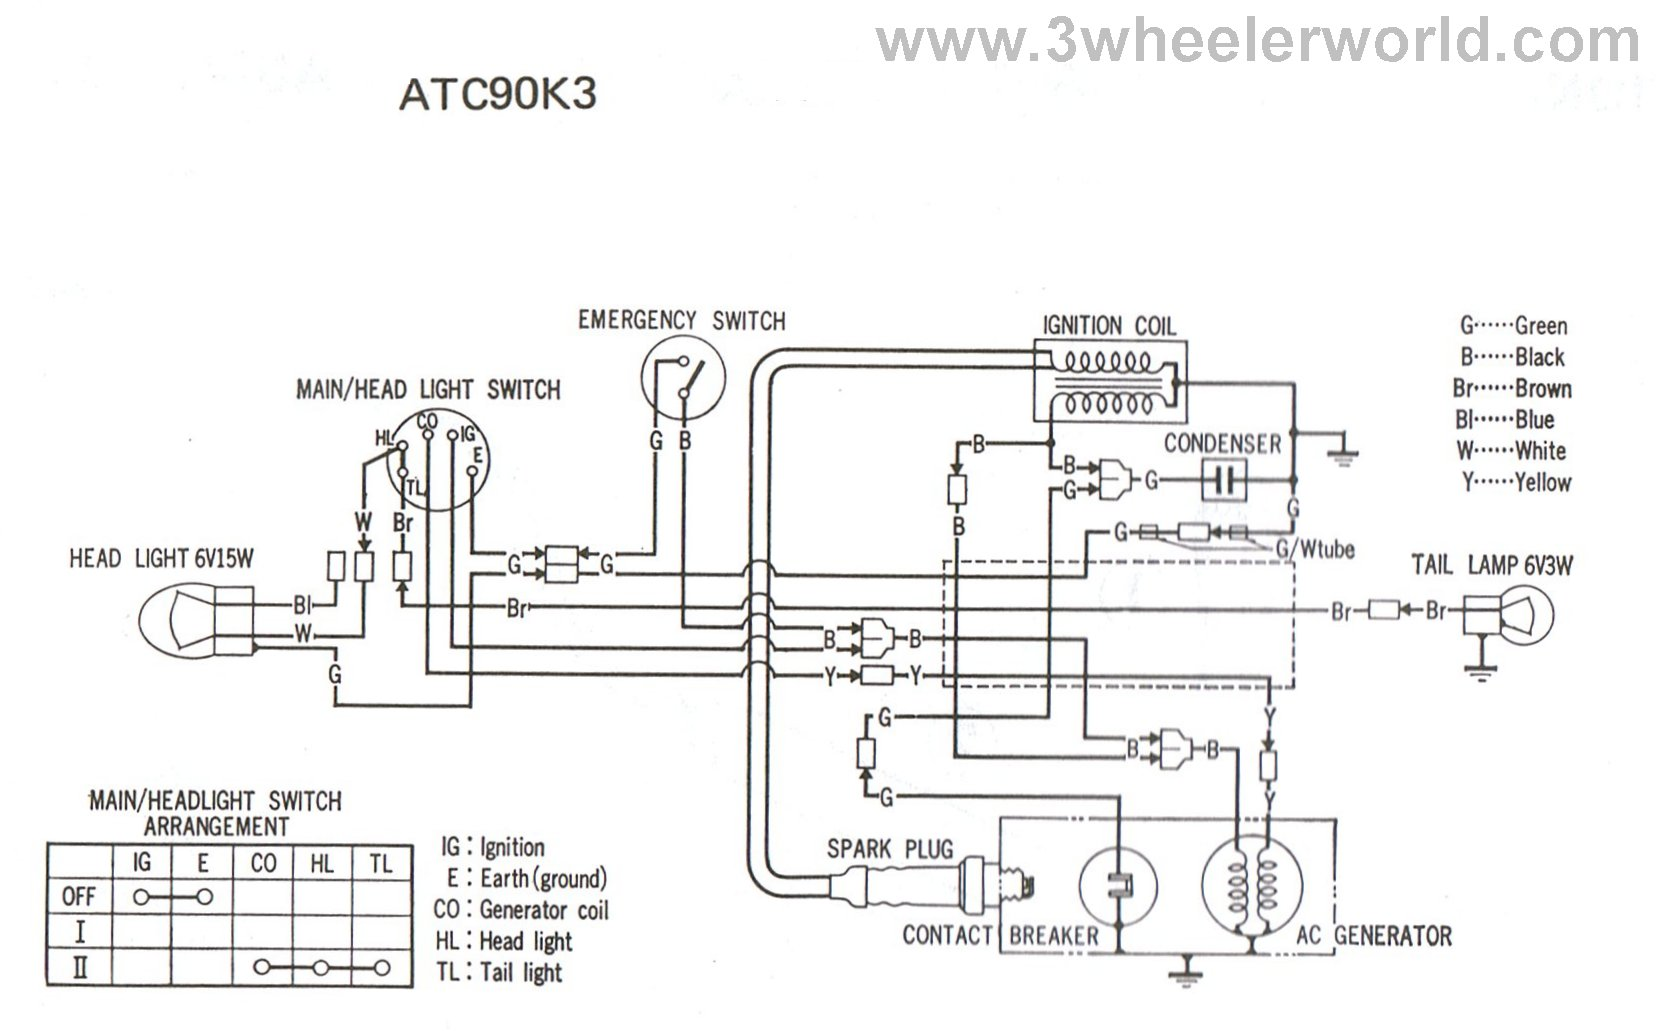 ATC90K3HM polaris predator 90 wiring diagram polaris 90 service manual 1995 polaris scrambler wiring diagram at bayanpartner.co